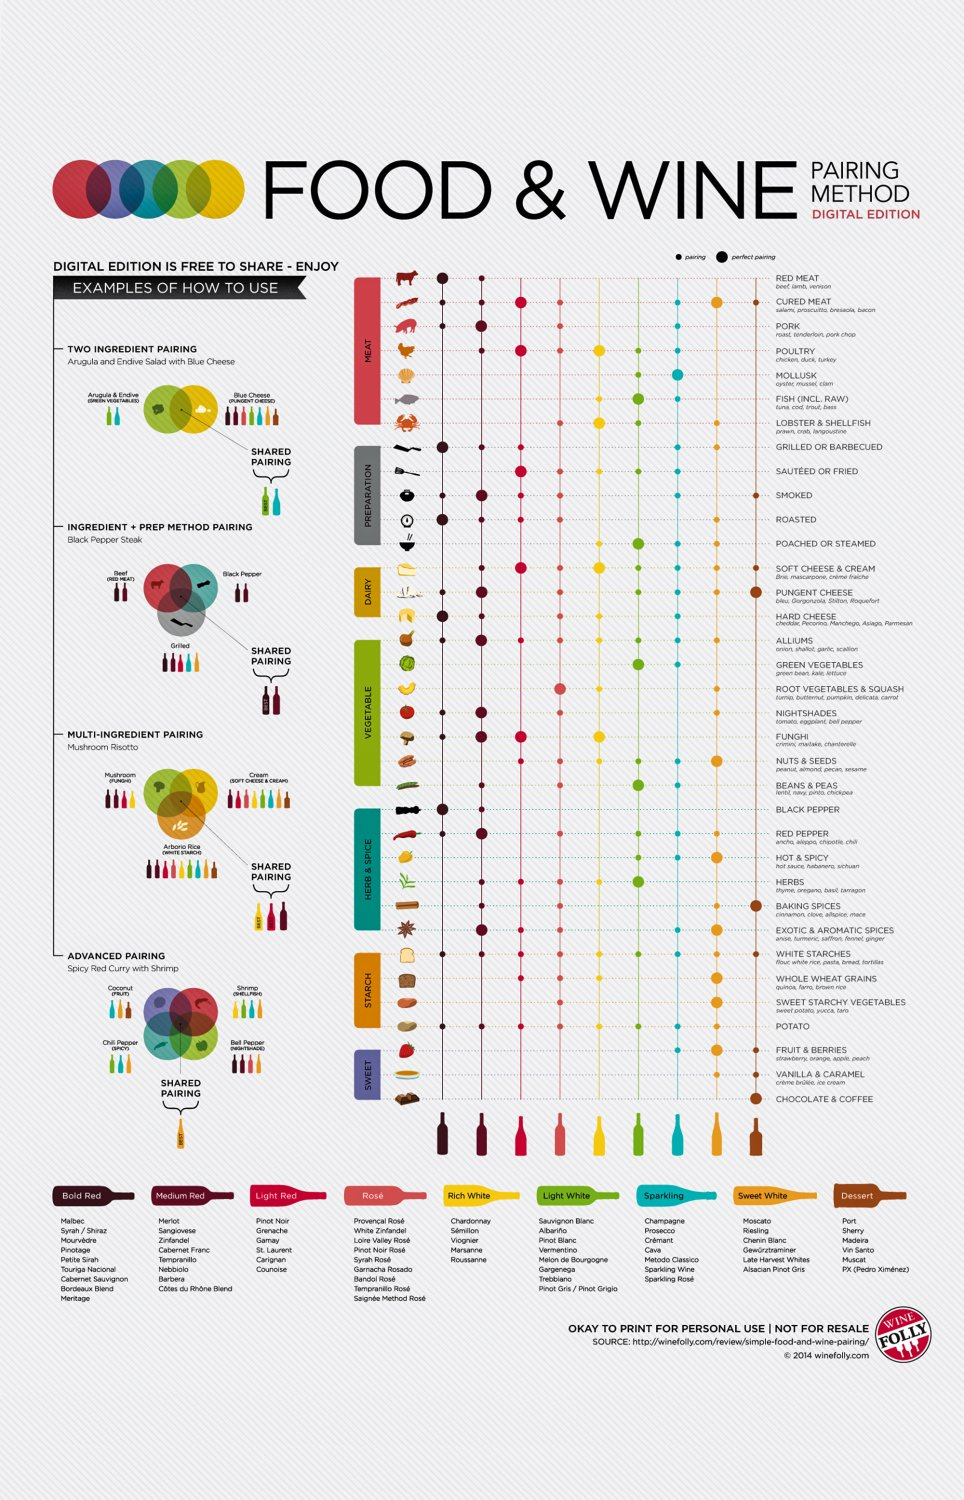 Food and Wine Pairing Method Infographic Chart  18x28 inches Poster Print